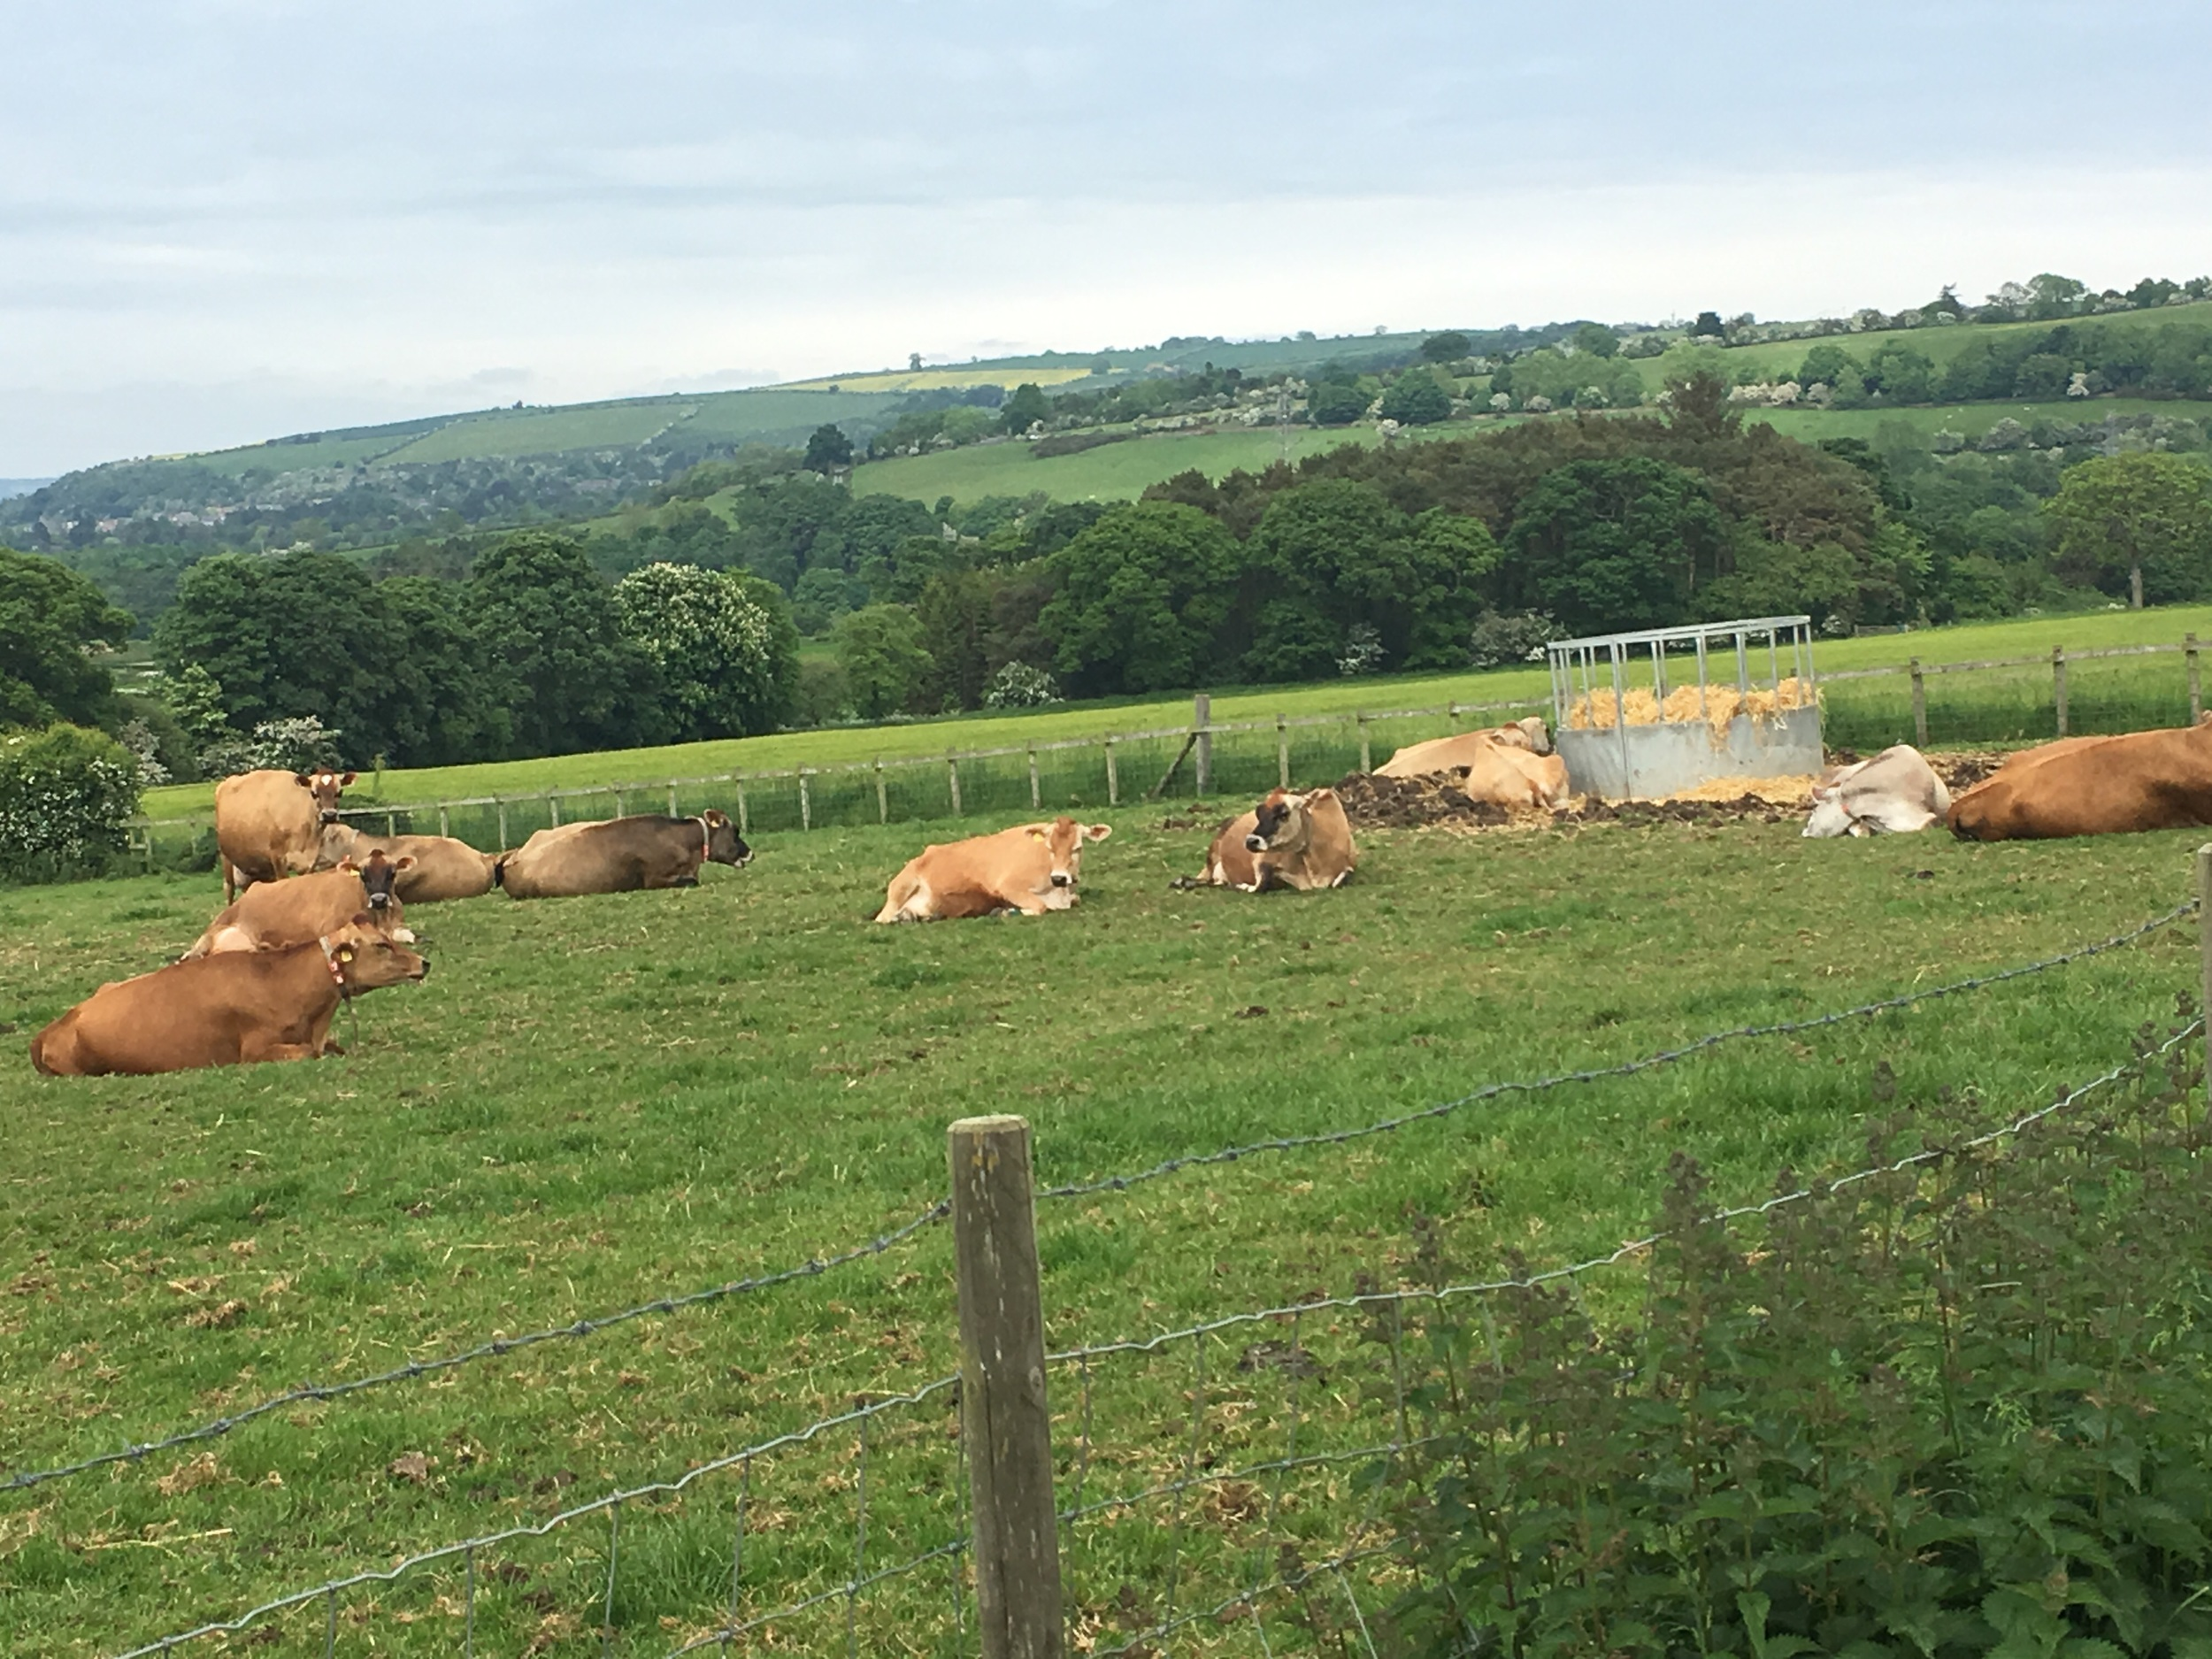 The jersey cows grazing in the fields as you approach the farm.